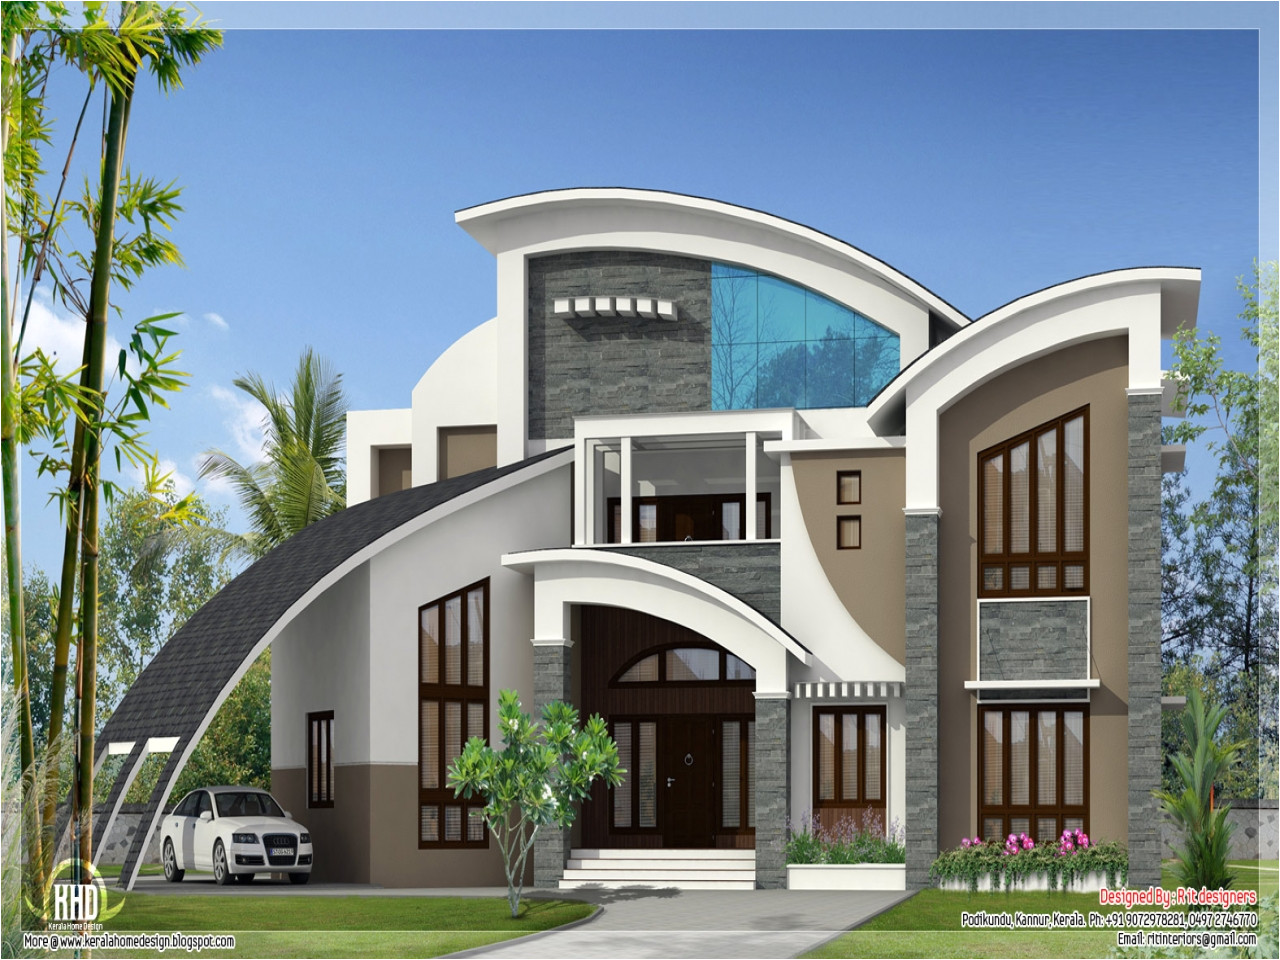 Luxury Small Home Plans Small Luxury House Plans